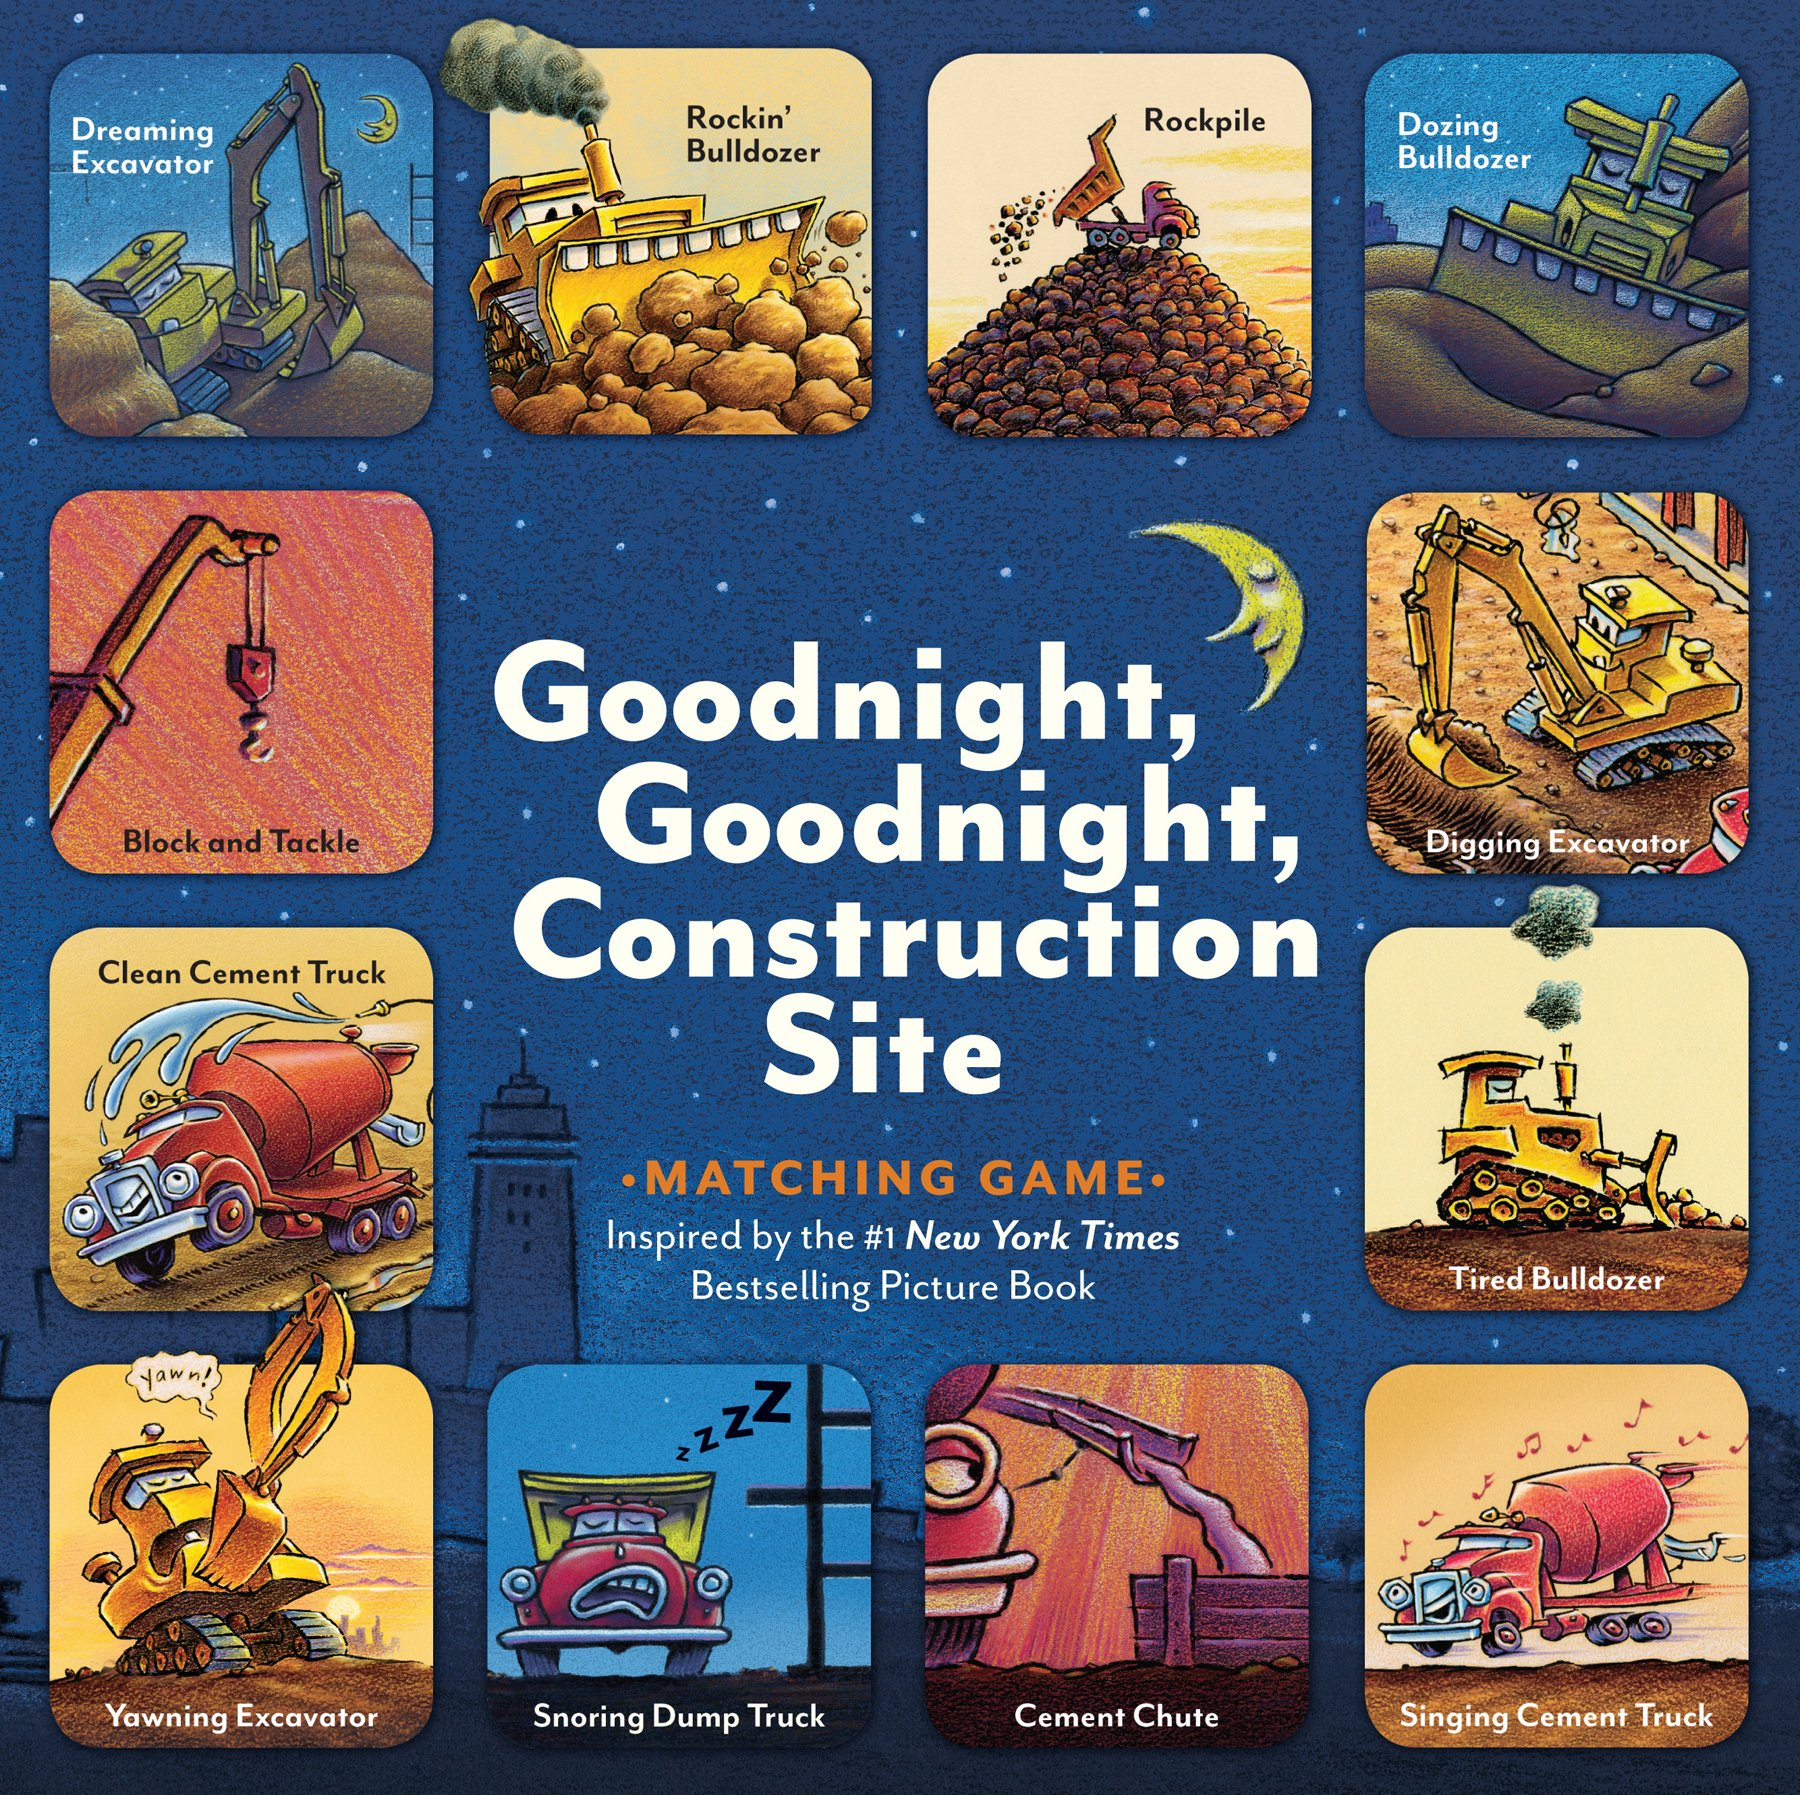 Goodnight, Goodnight, Construction Site Matching Game